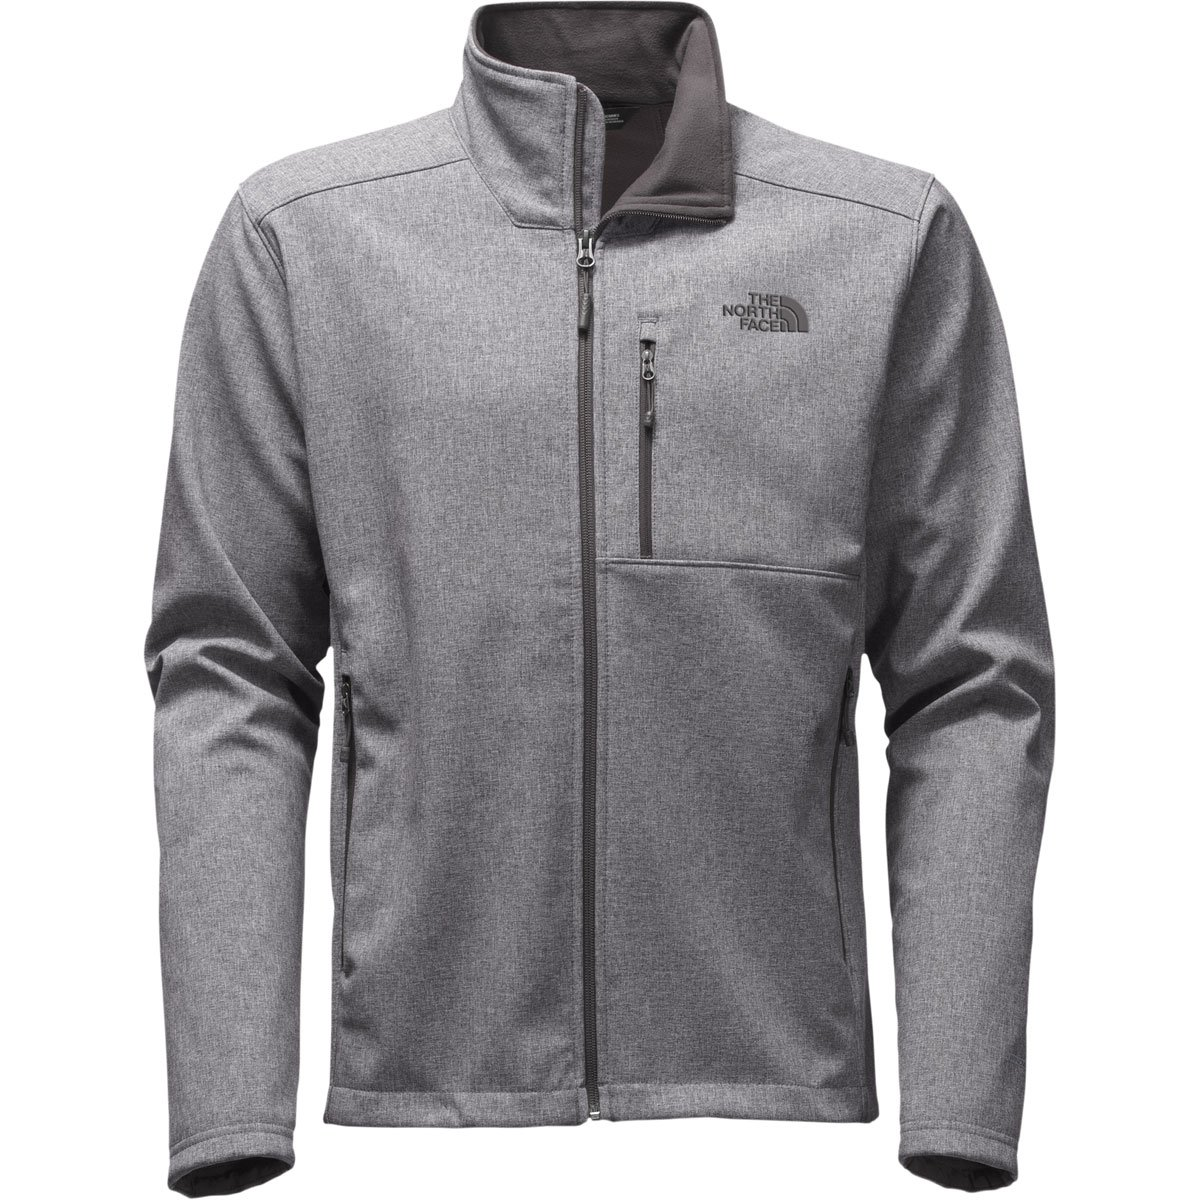 The North Face Men's  Apex Bionic 2 Jacket - Tall, X-Large, TNF Medium Grey Heather/TNF Medium Grey Heather by The North Face